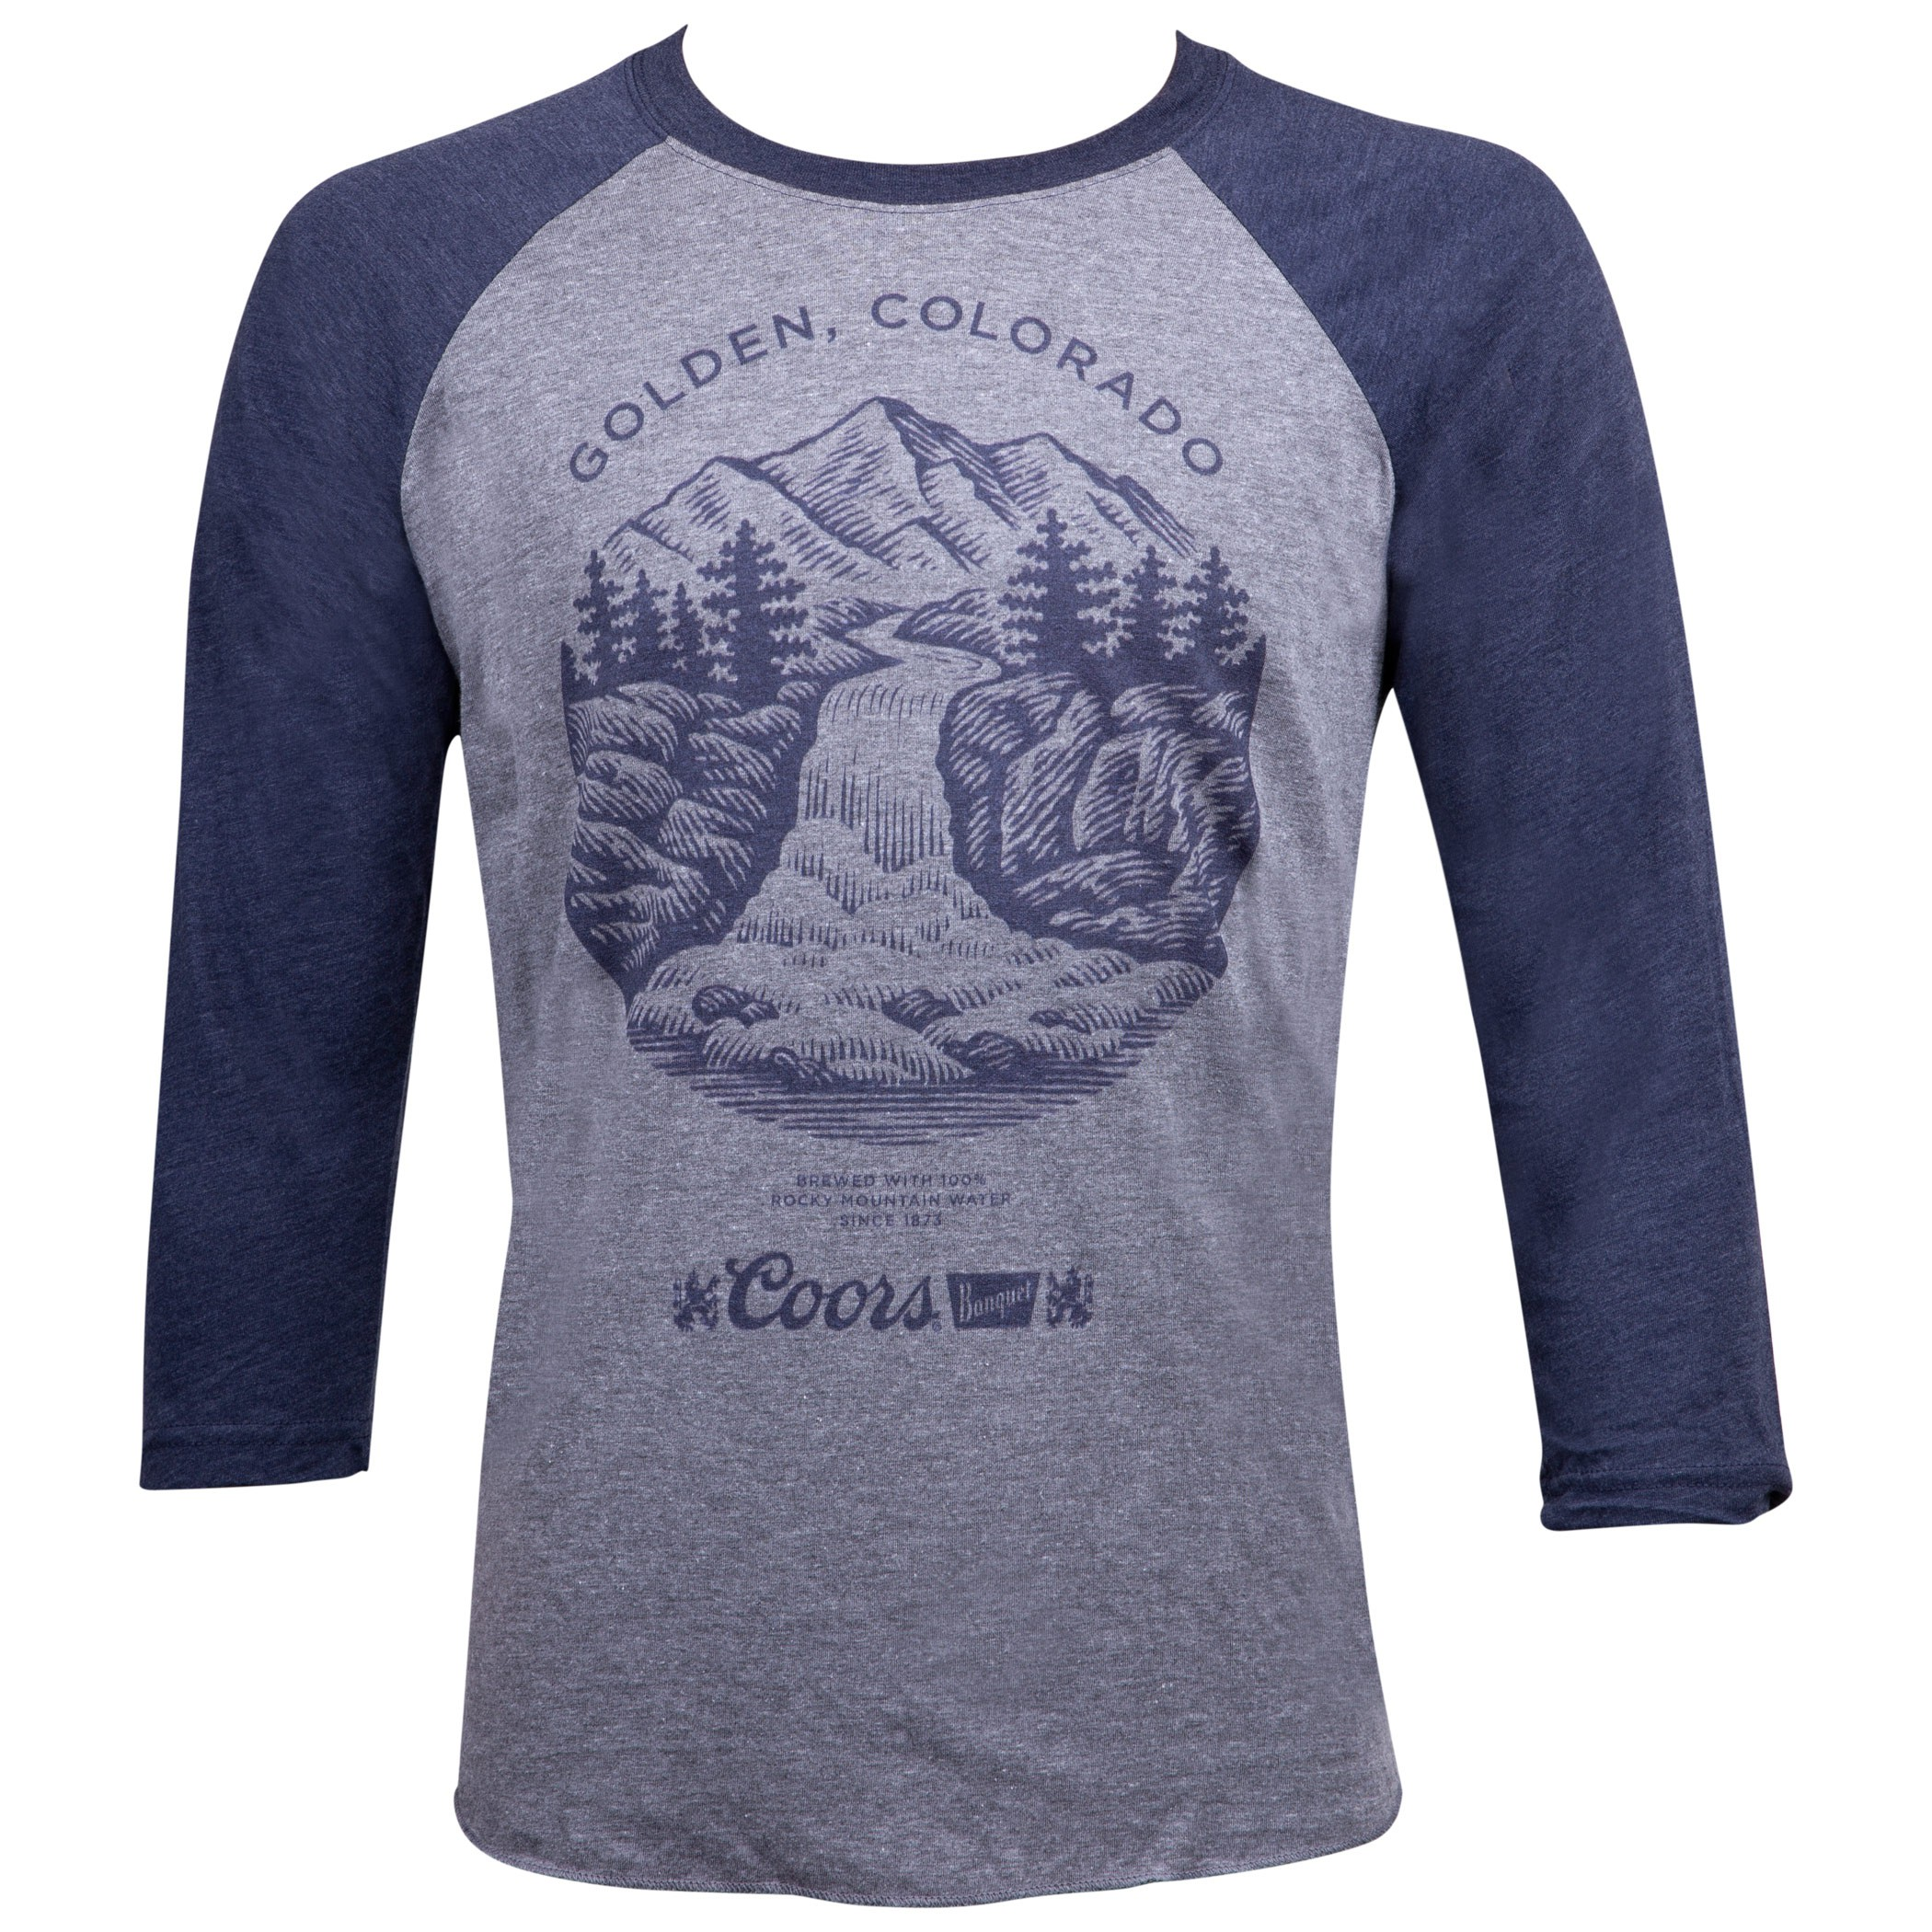 Coors Golden Colorado Raglan Shirt